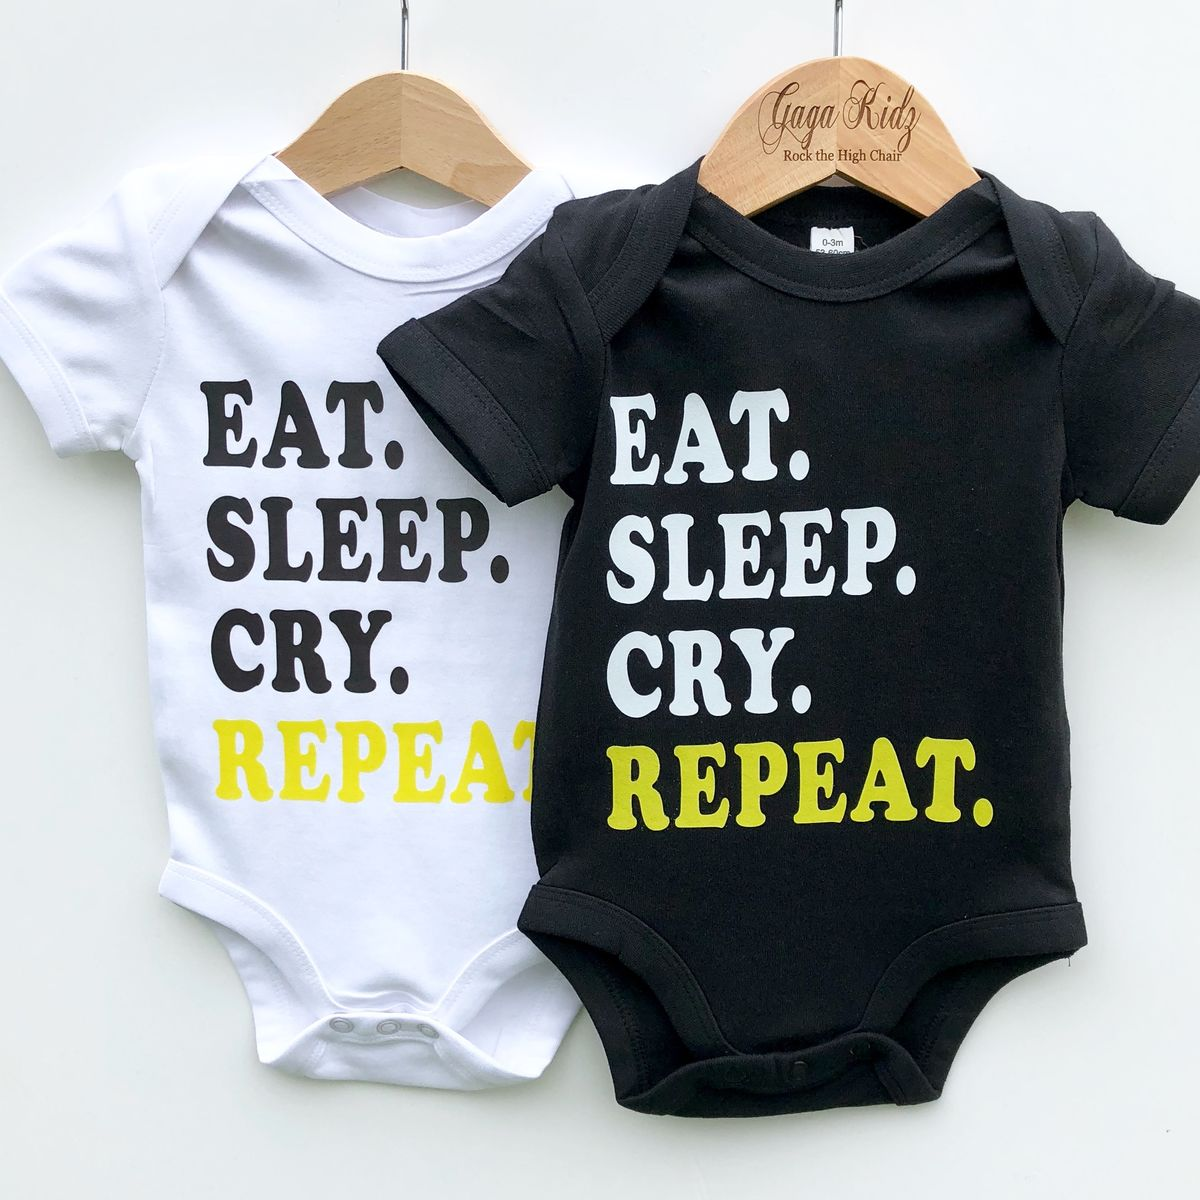 Eat Sleep Cry Repeat Black & White Bodysuits (various sizes)  - product images  of